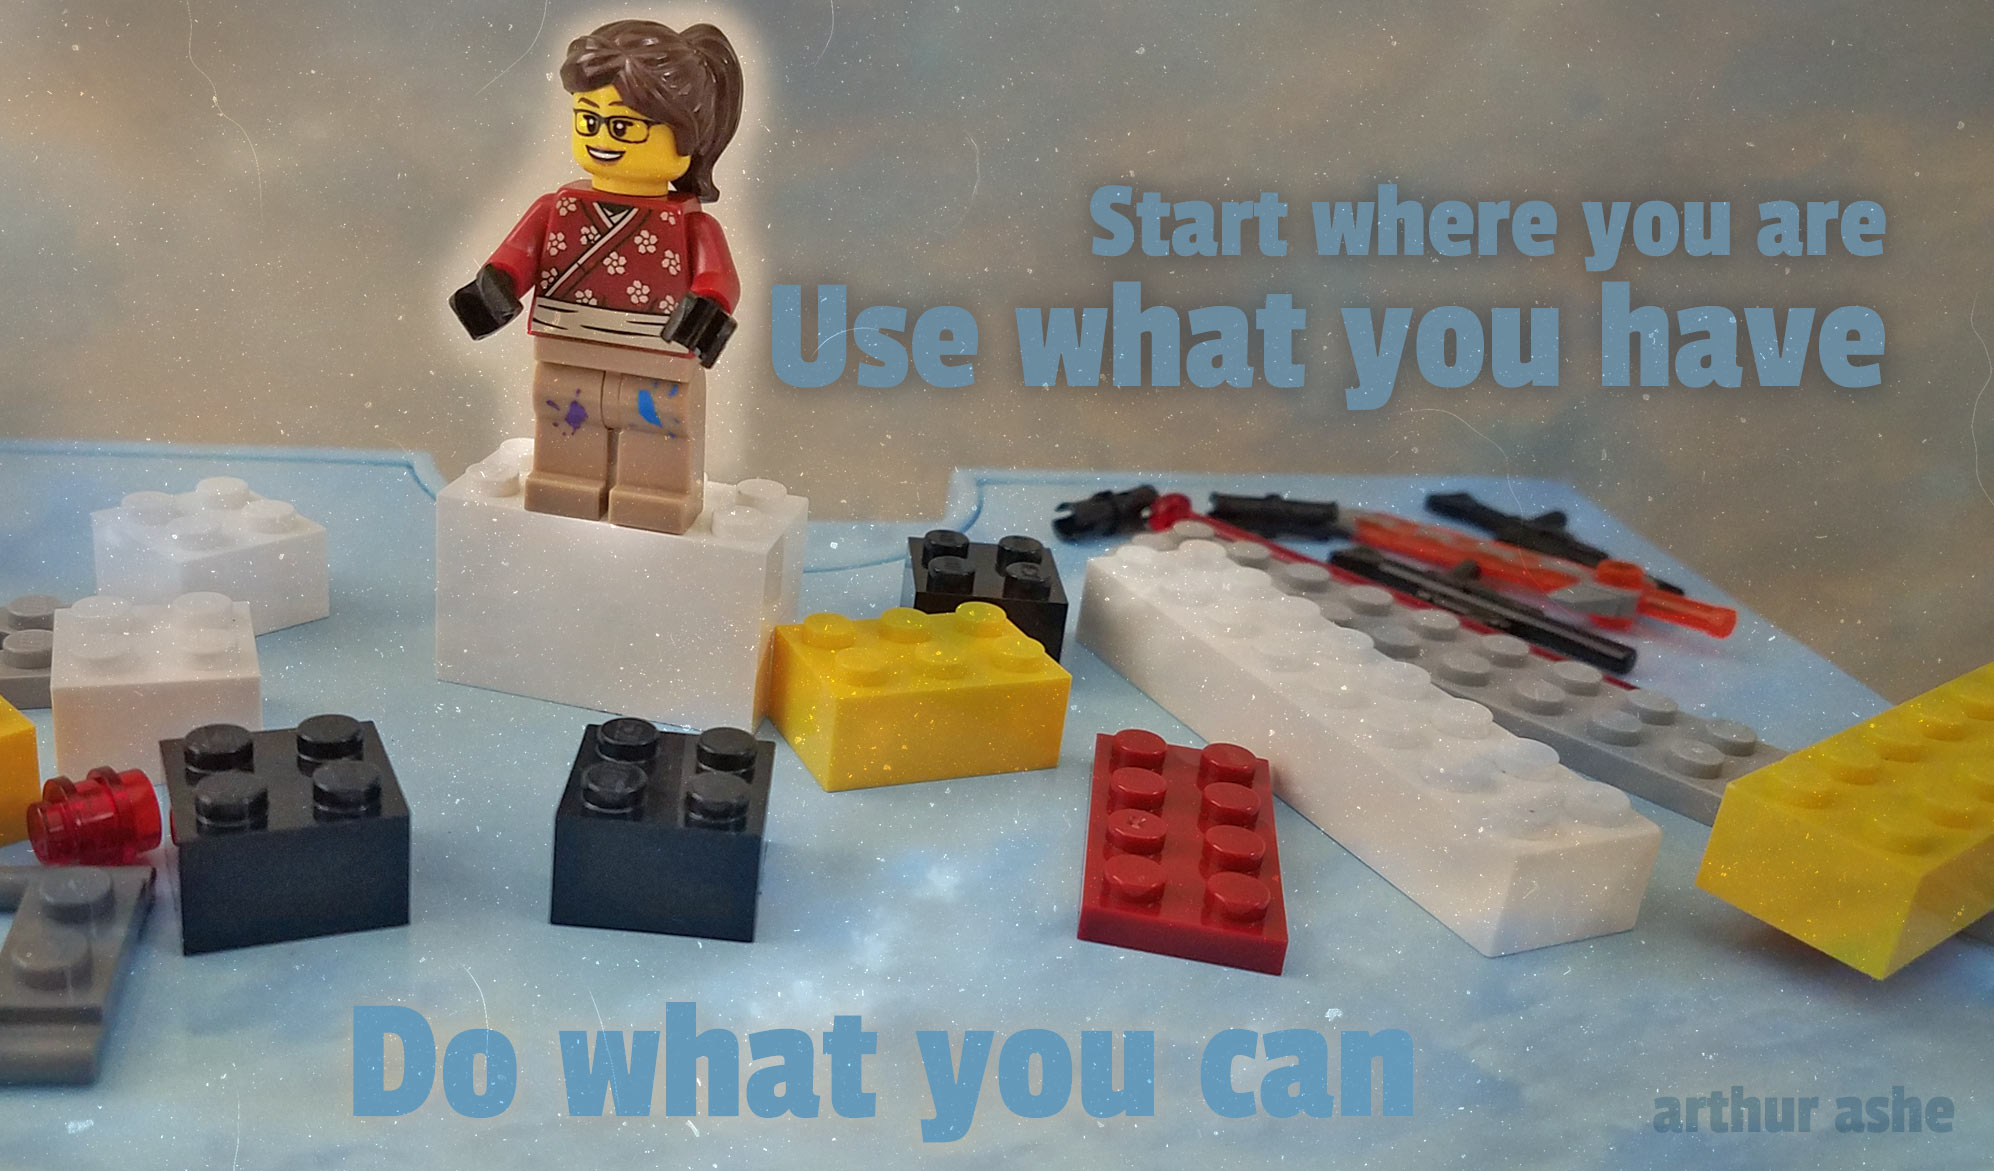 daily inspirational quote image: a LEGO femal mini figure surrounded by various Lego pieces